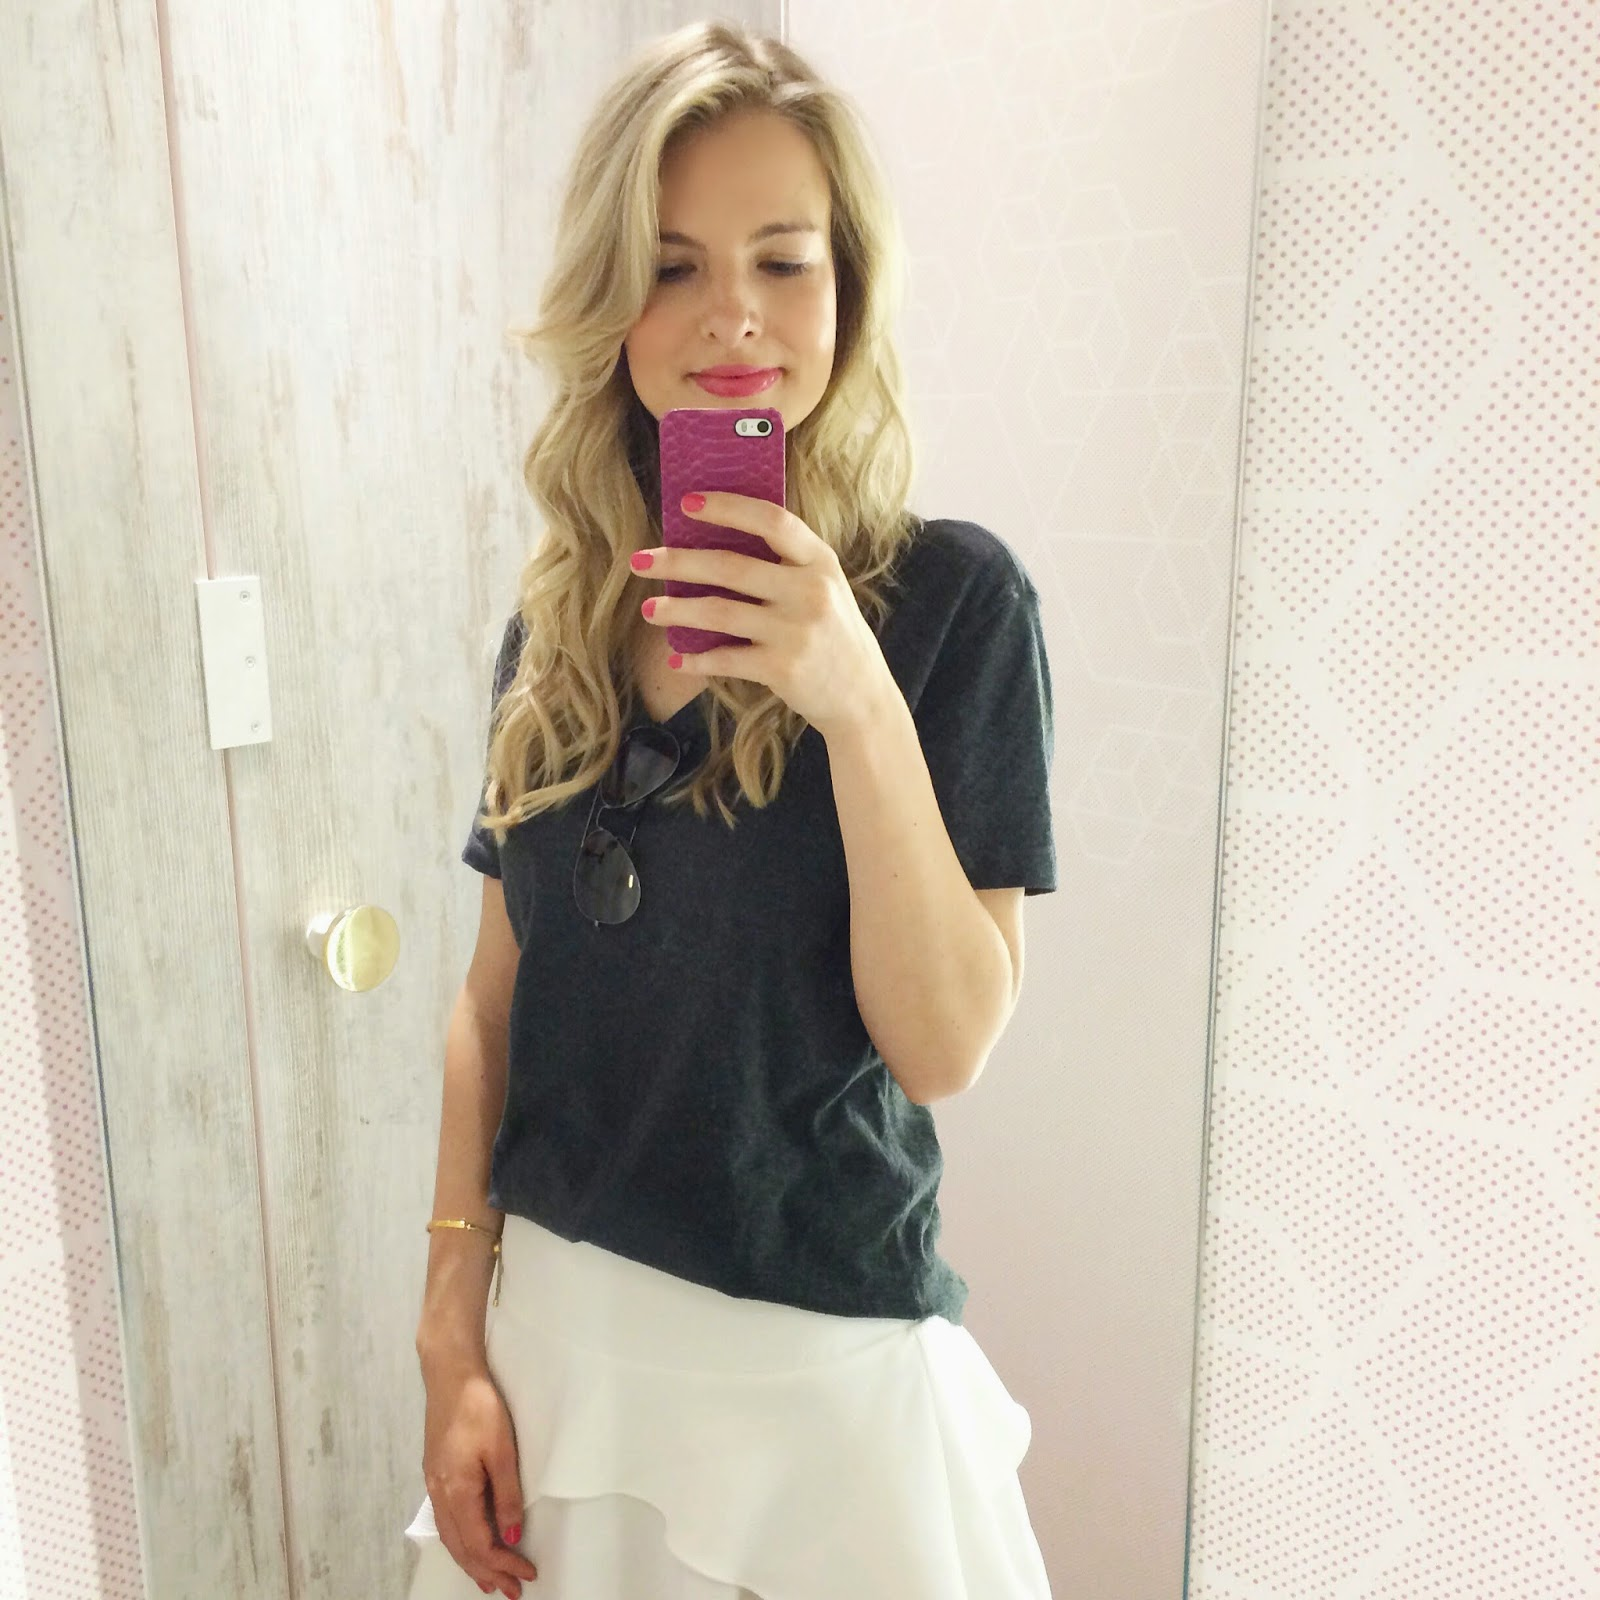 caese we love, gap, hm trend, hm trend white skirt, hm asymmetric skirt, pink phone case, selfie, fashion blogger